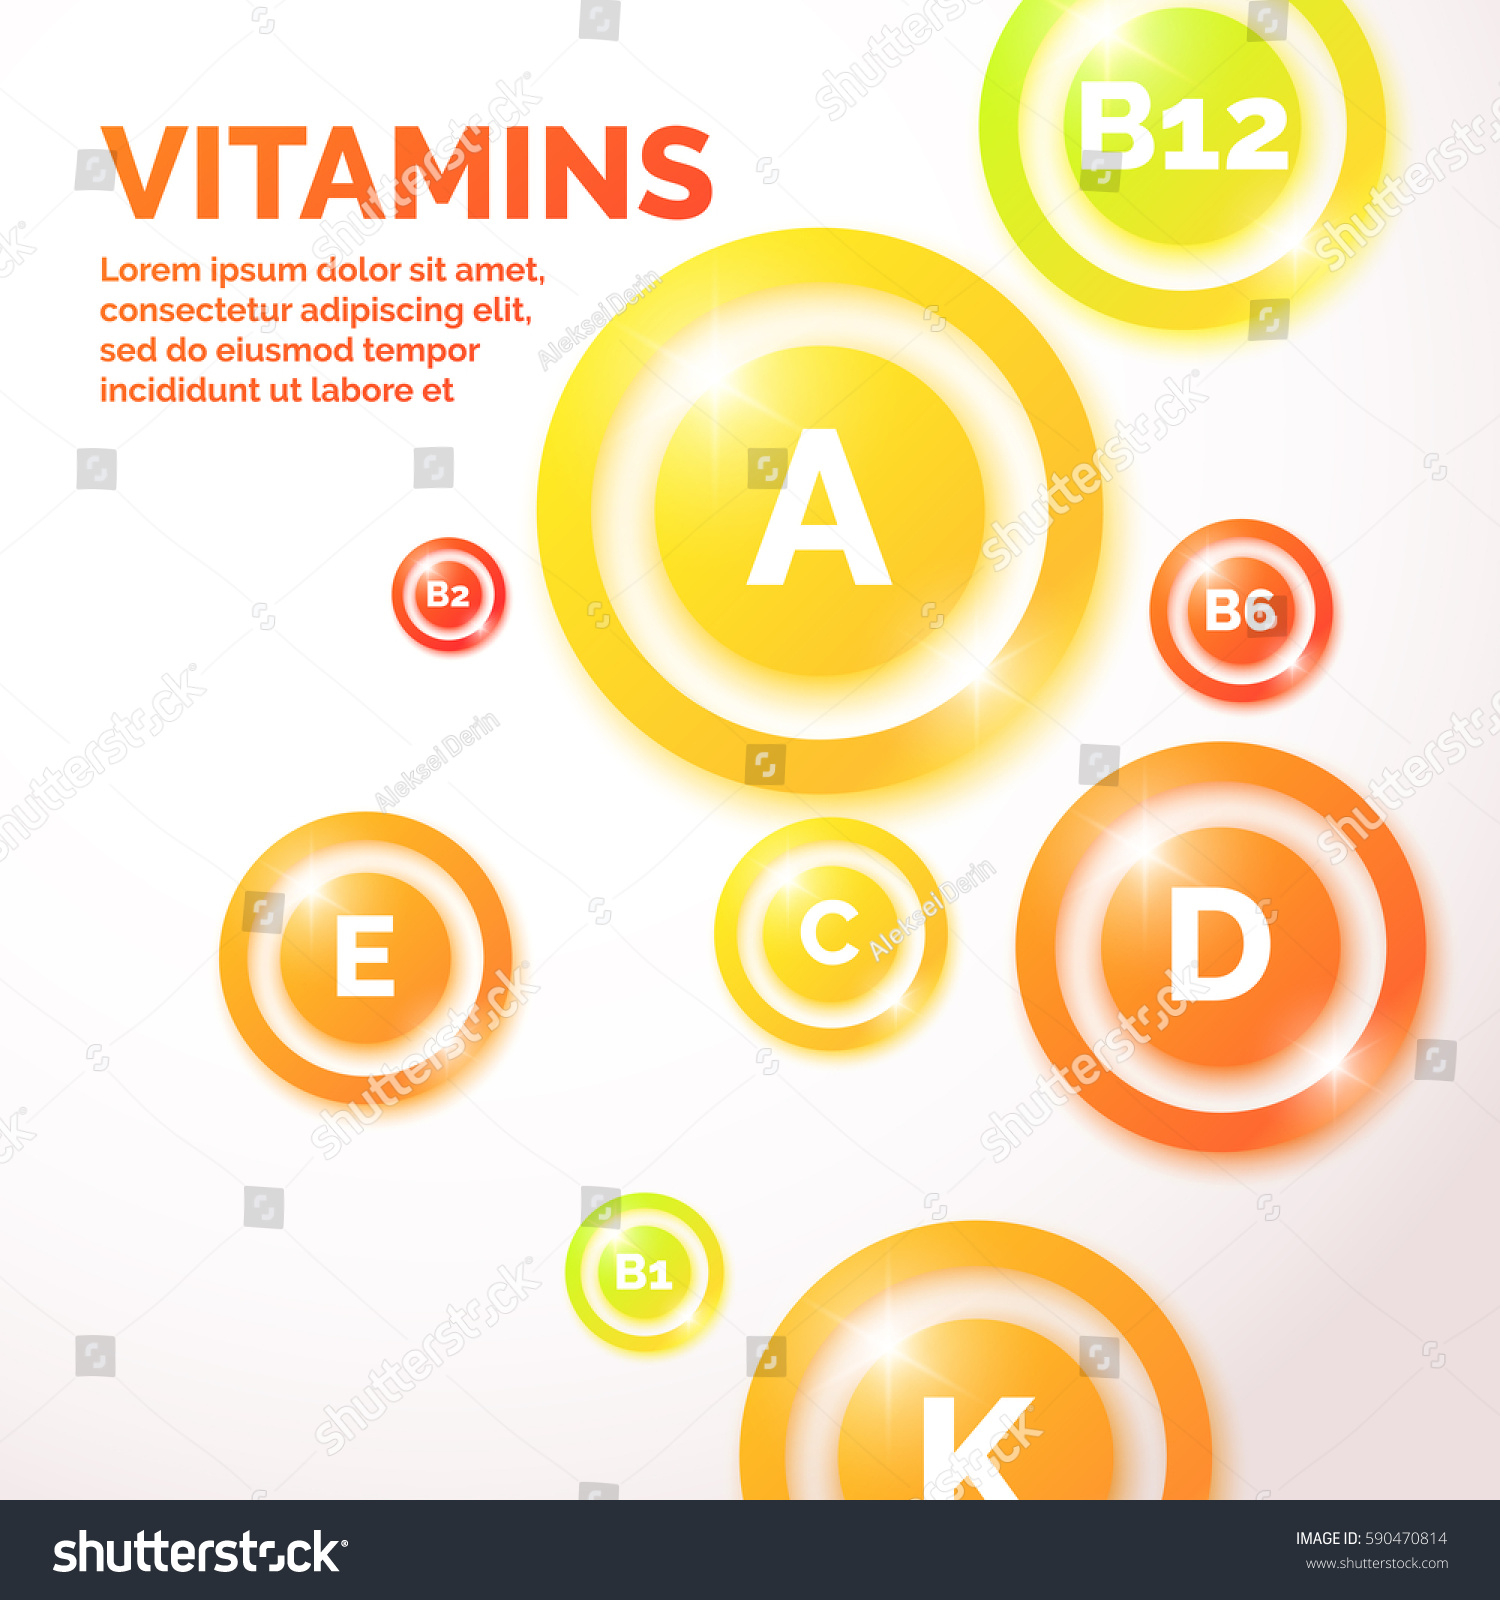 Proper Nutrition Health Care Background Vitamins Stock Vector